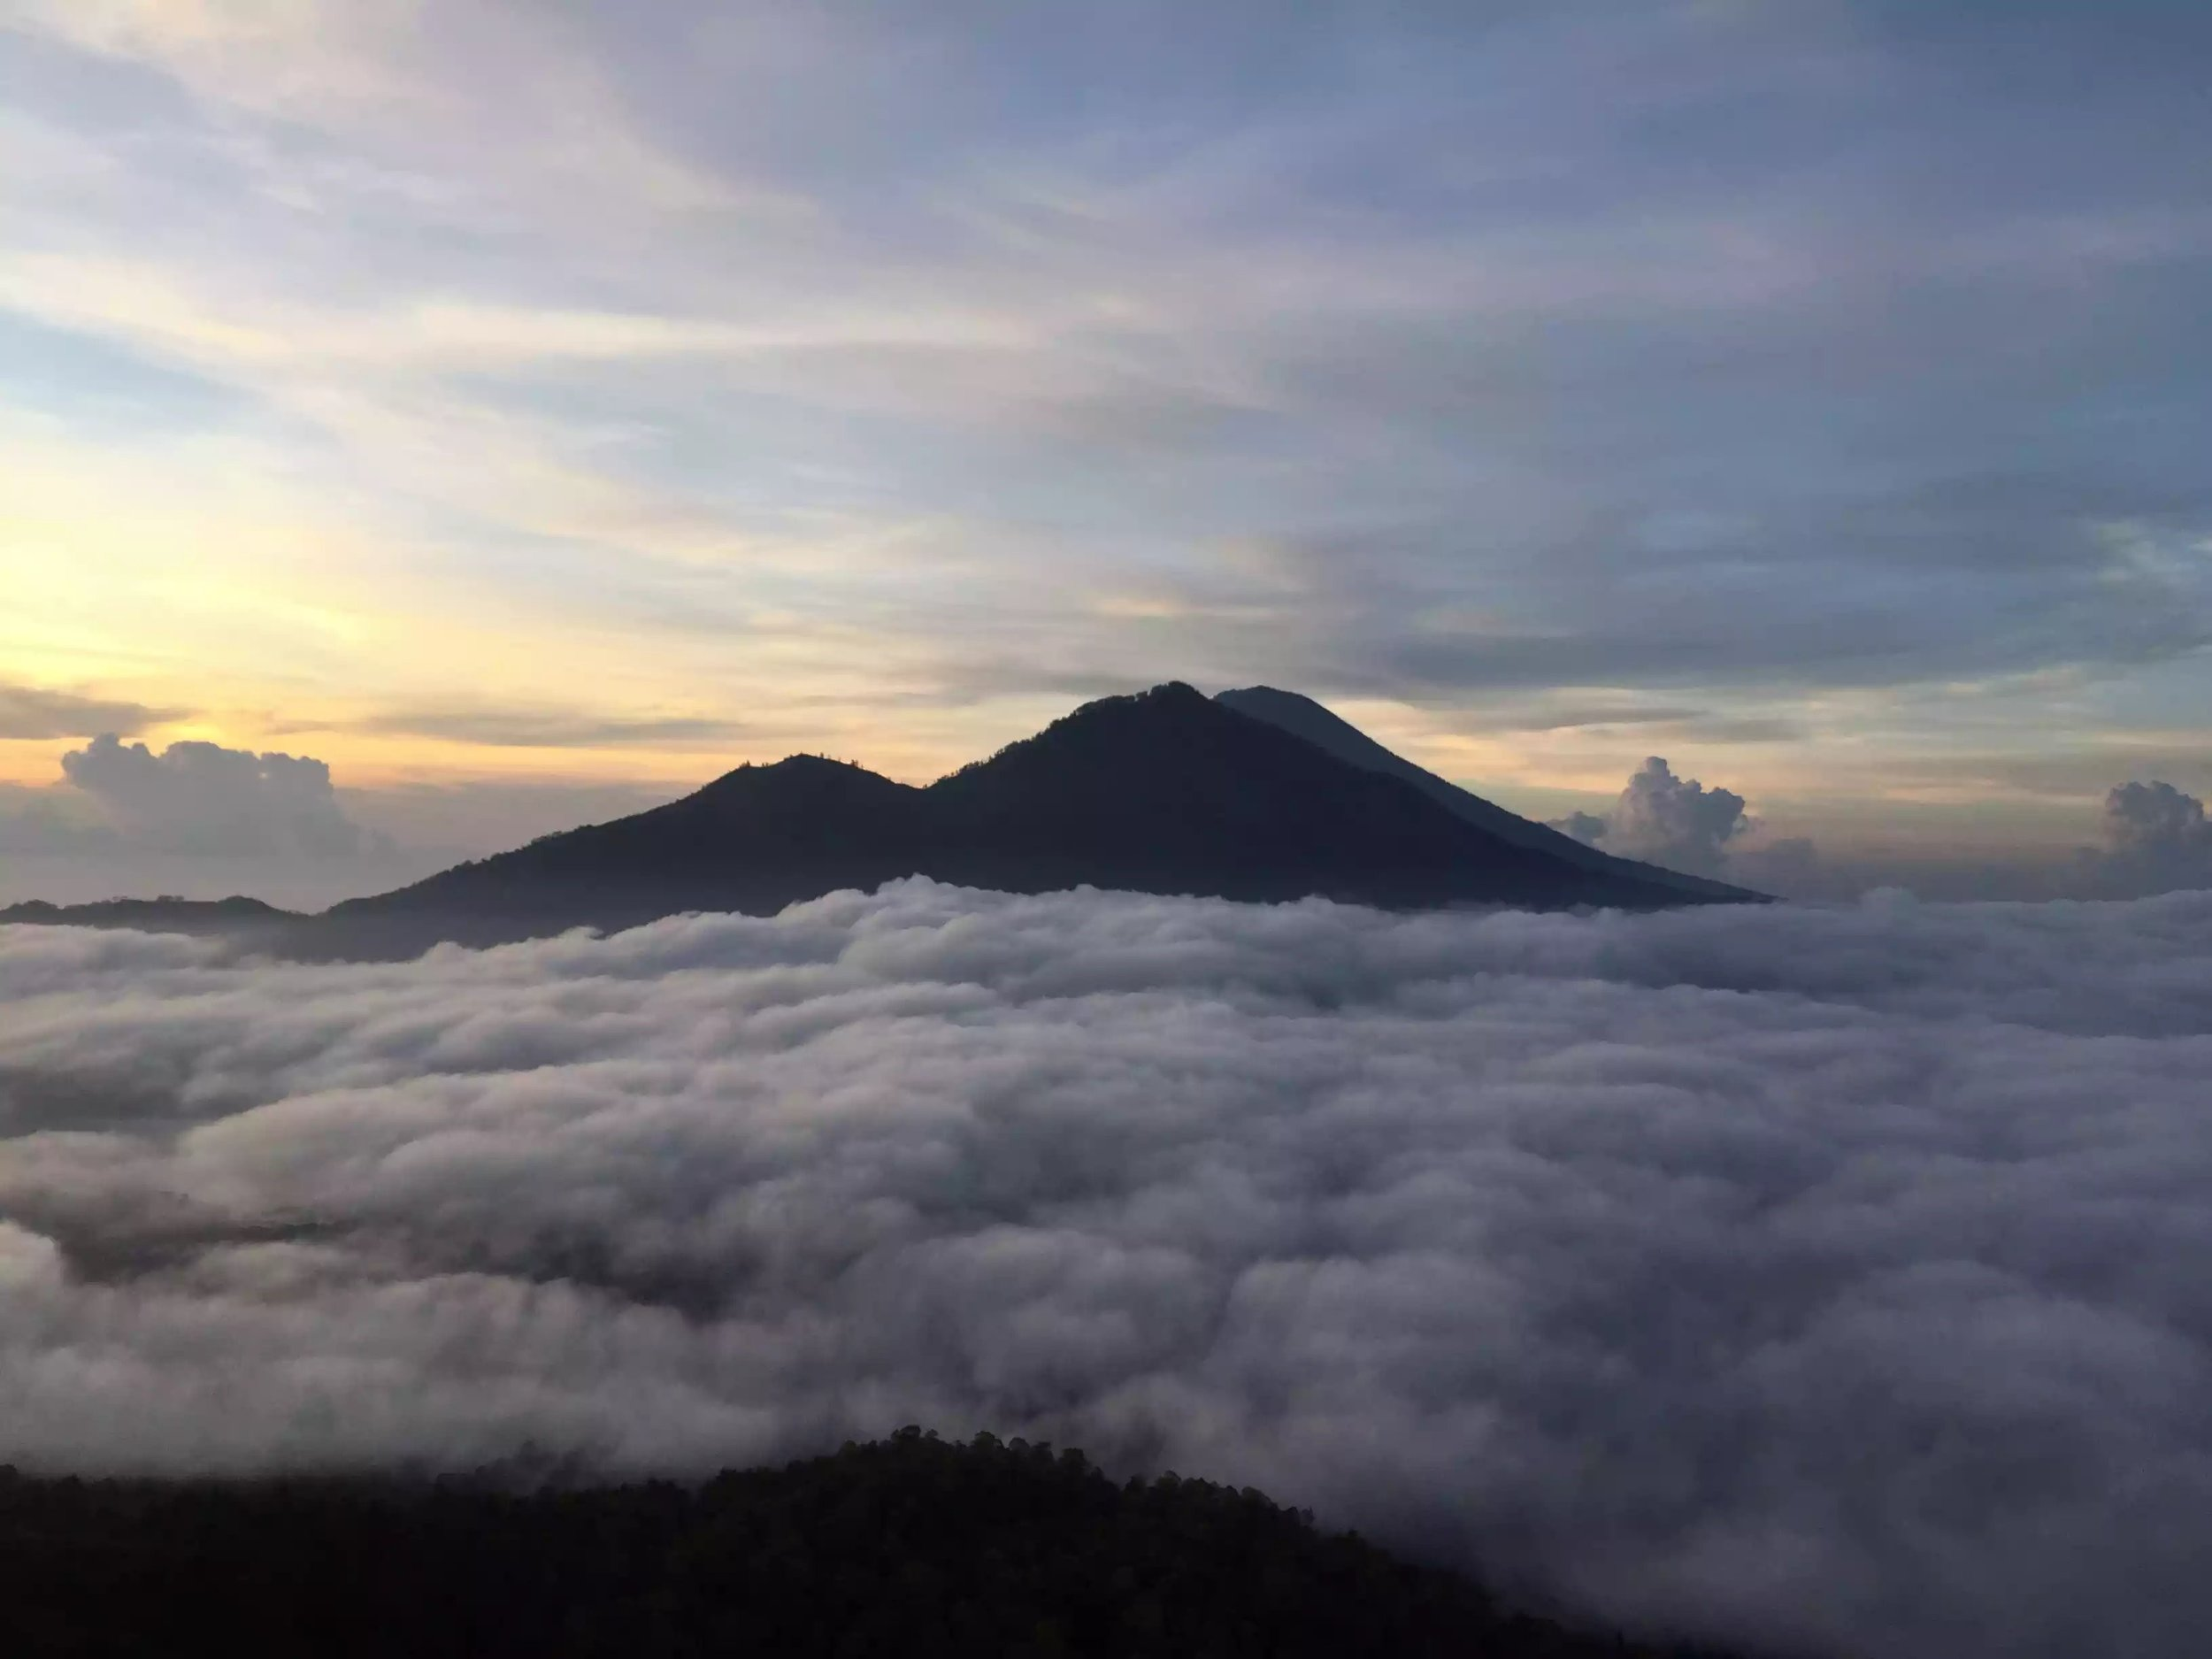 The view from the top of Mount Batur